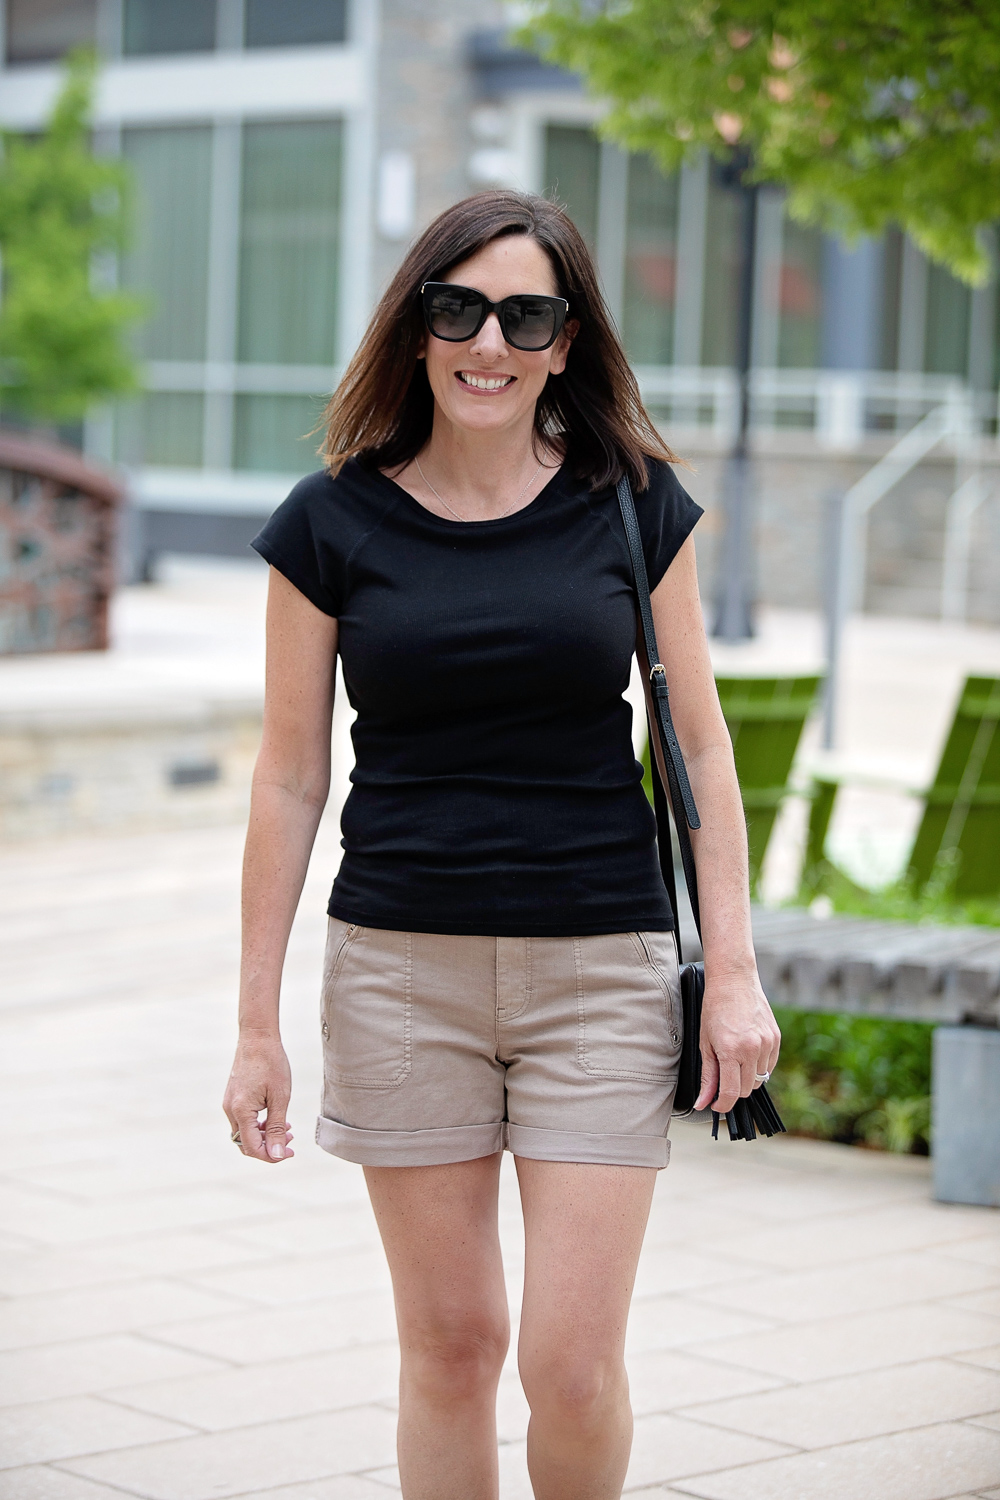 Tips for Wearing Shorts Over 40: Don't buy shorts that are too tight.